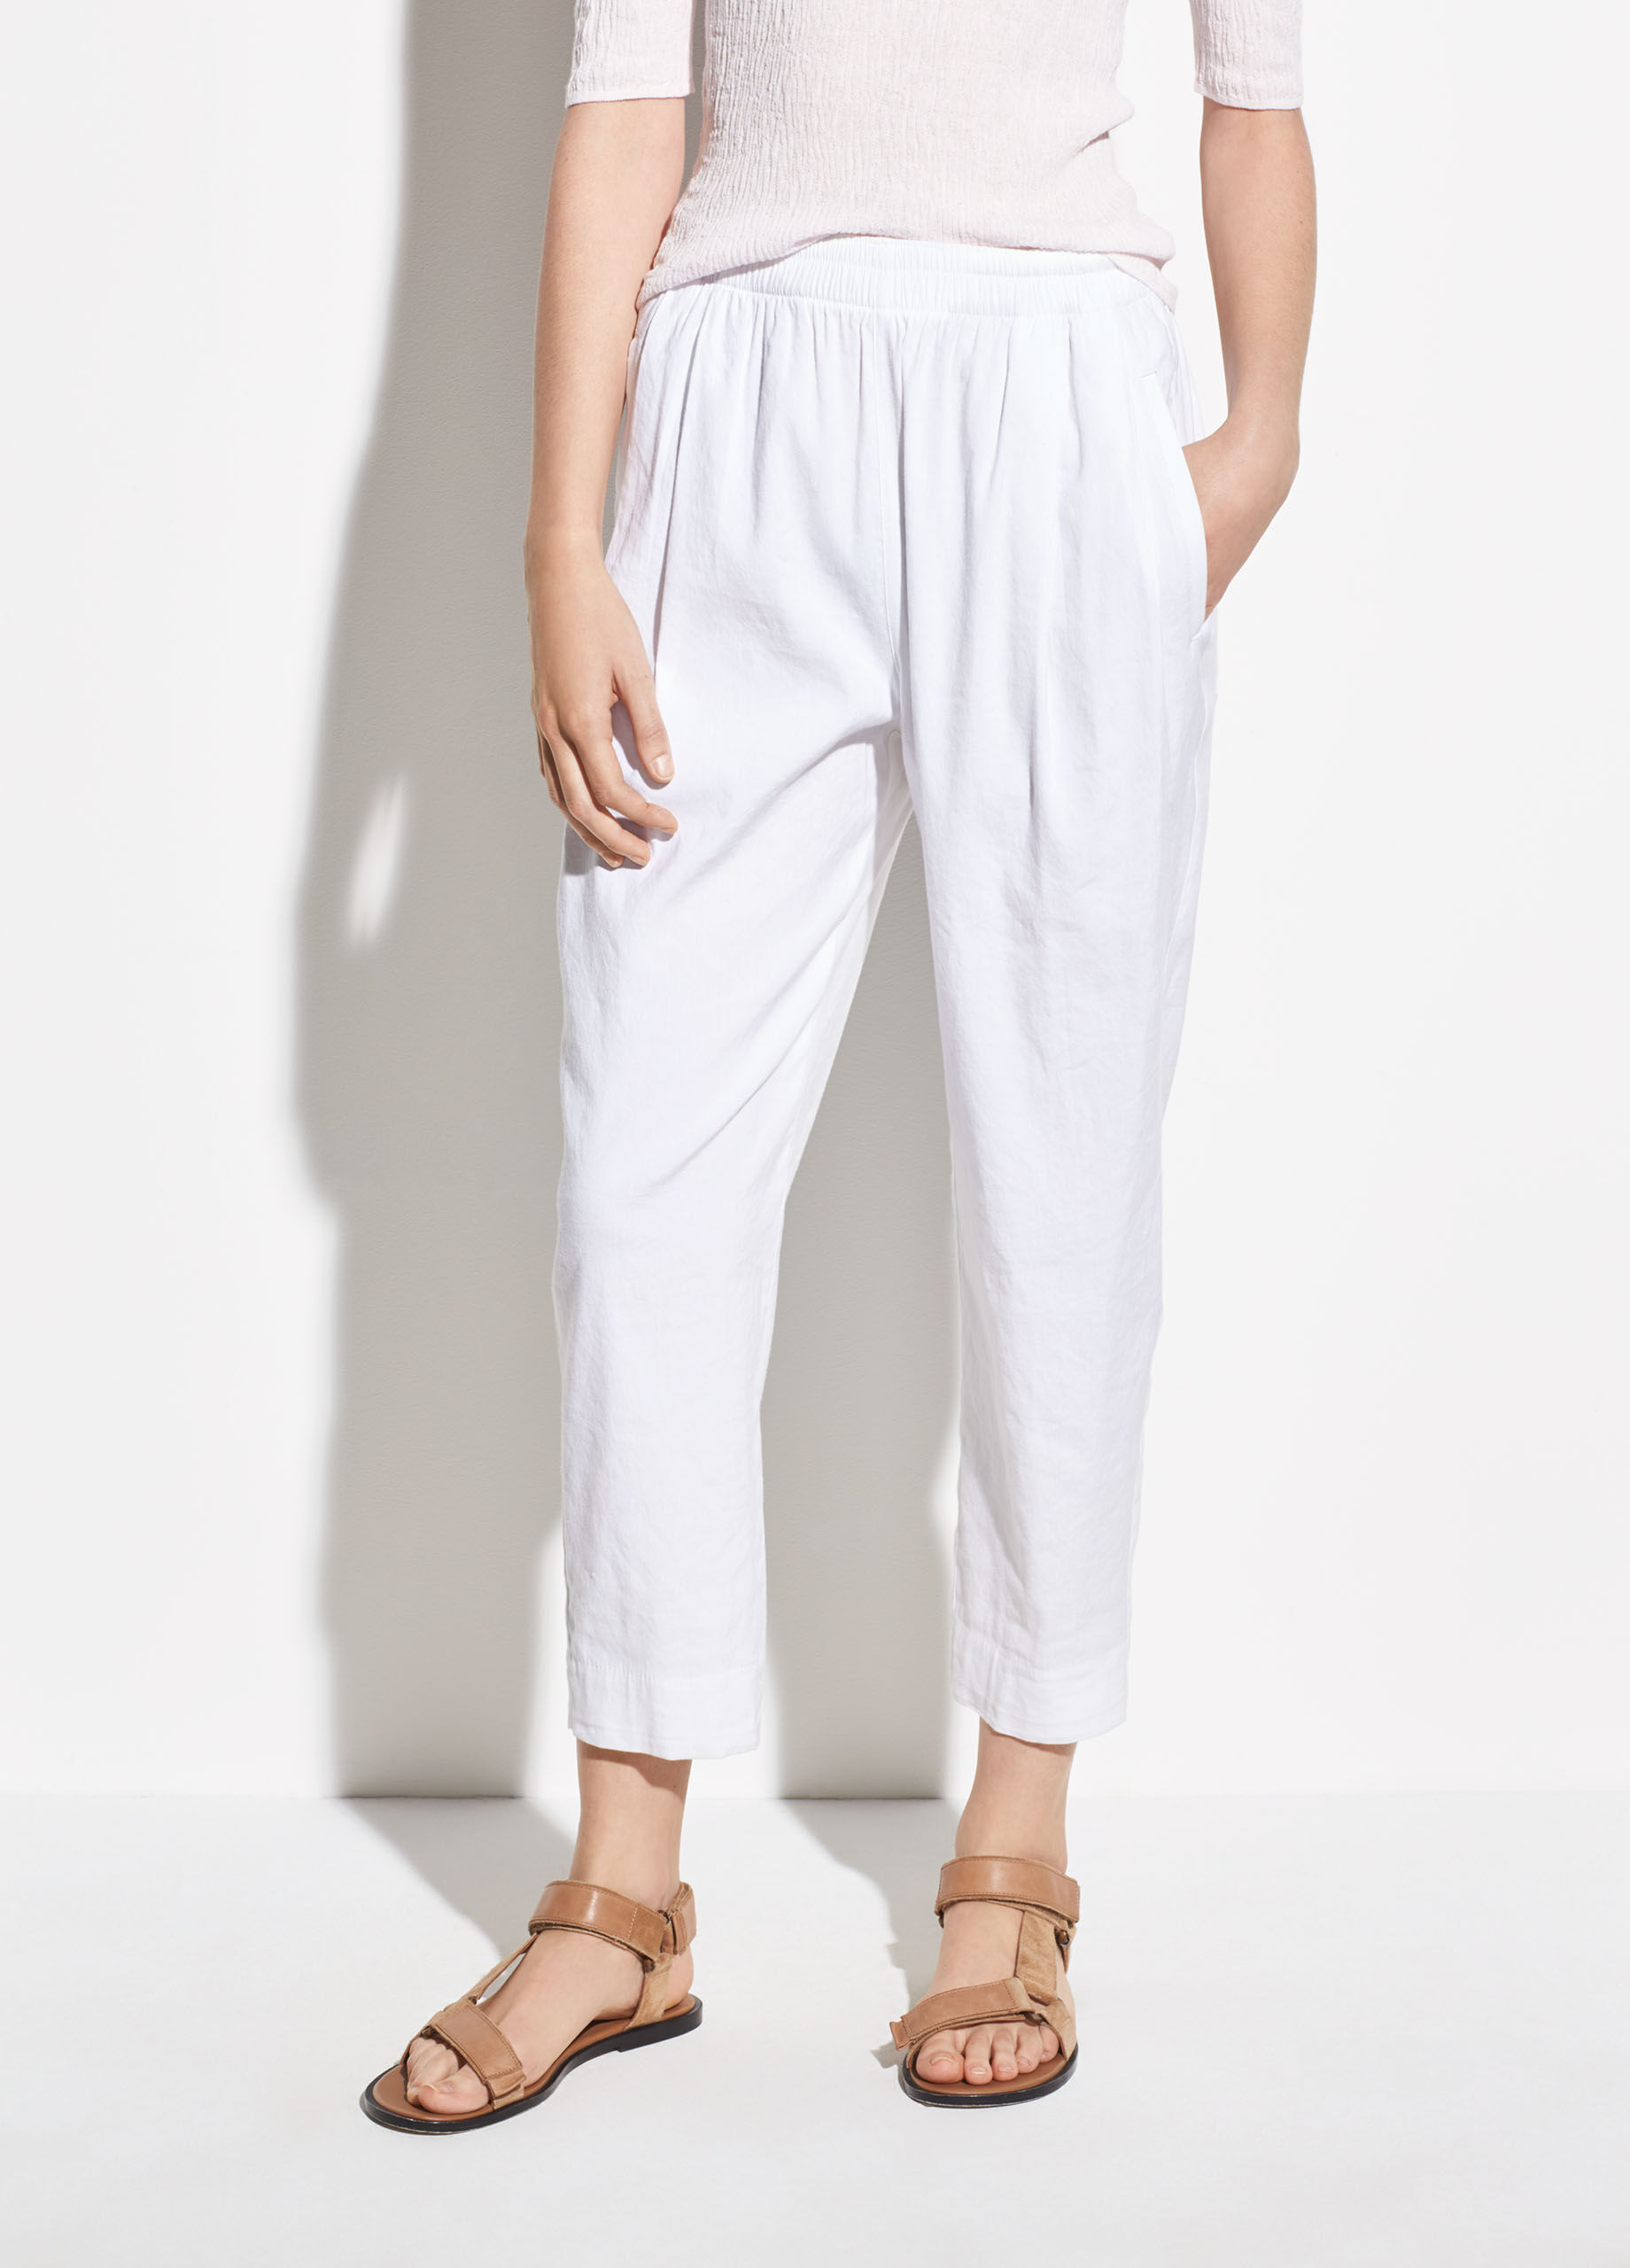 Womens black tapered linen trousers